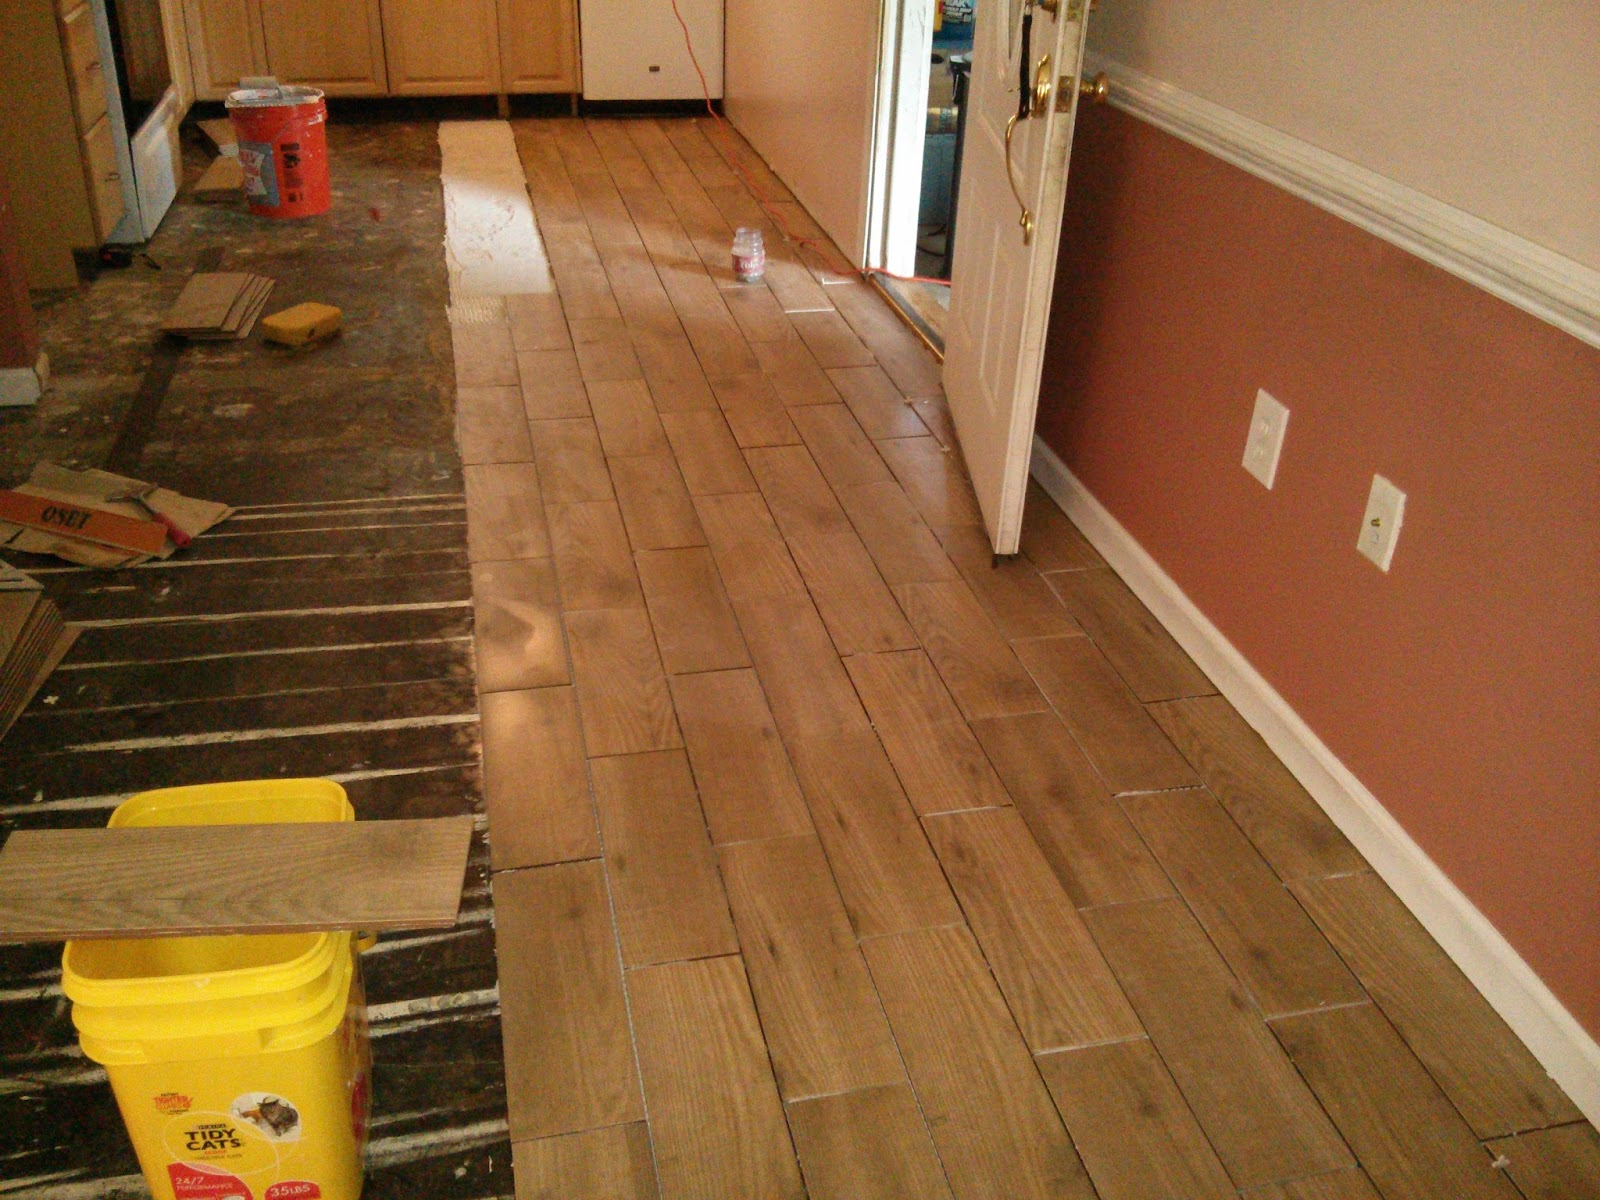 Floor Installation Photos WoodLook Porcelain Tile in